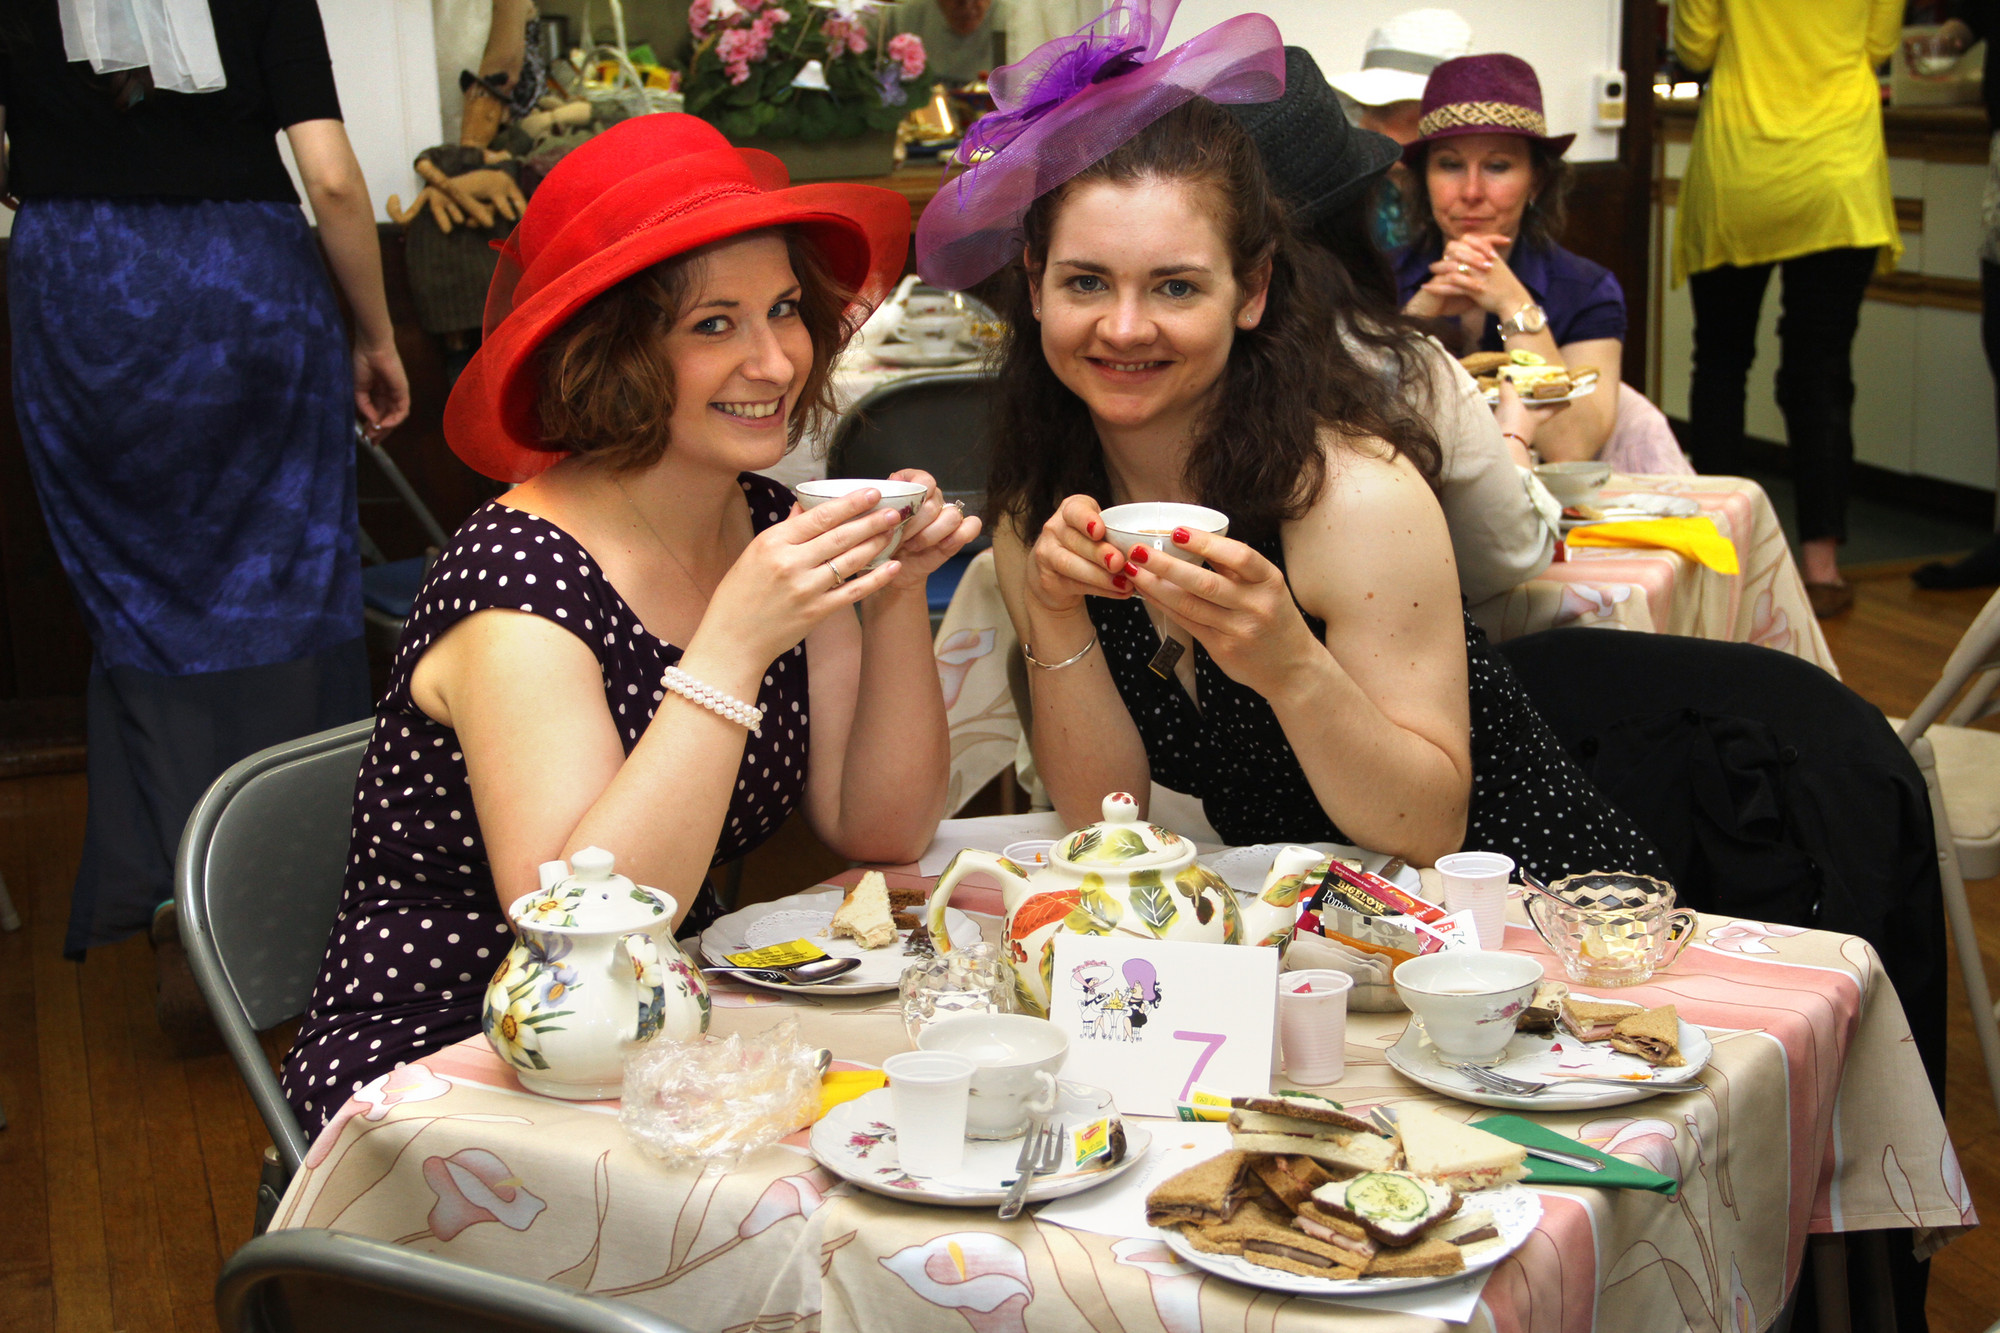 Katie Rosevear and Katherine Grimm enjoyed tea while wearing their fanciest hats.